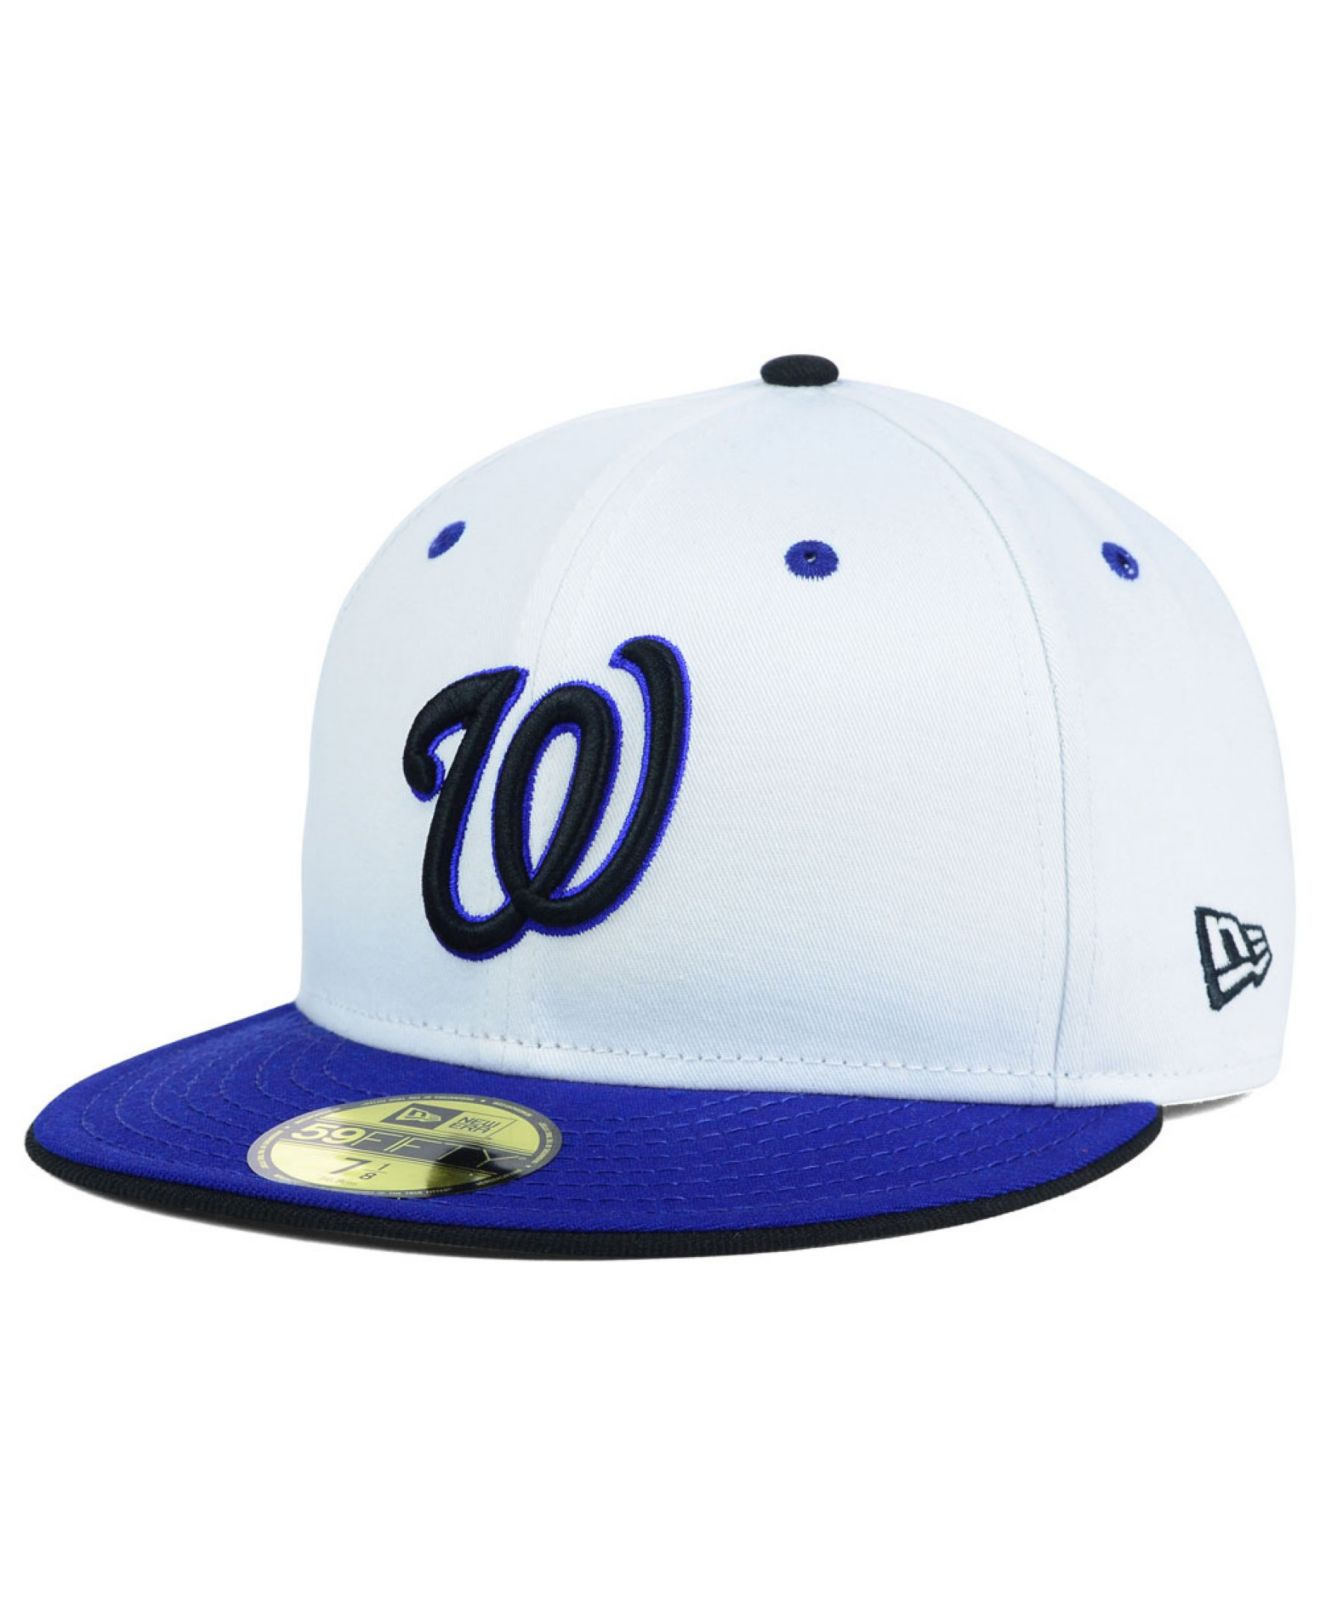 d0a3a6970d5 ... where to buy lyst ktz washington nationals mlb august hookups 59fifty  cap in 25aca 9bdad